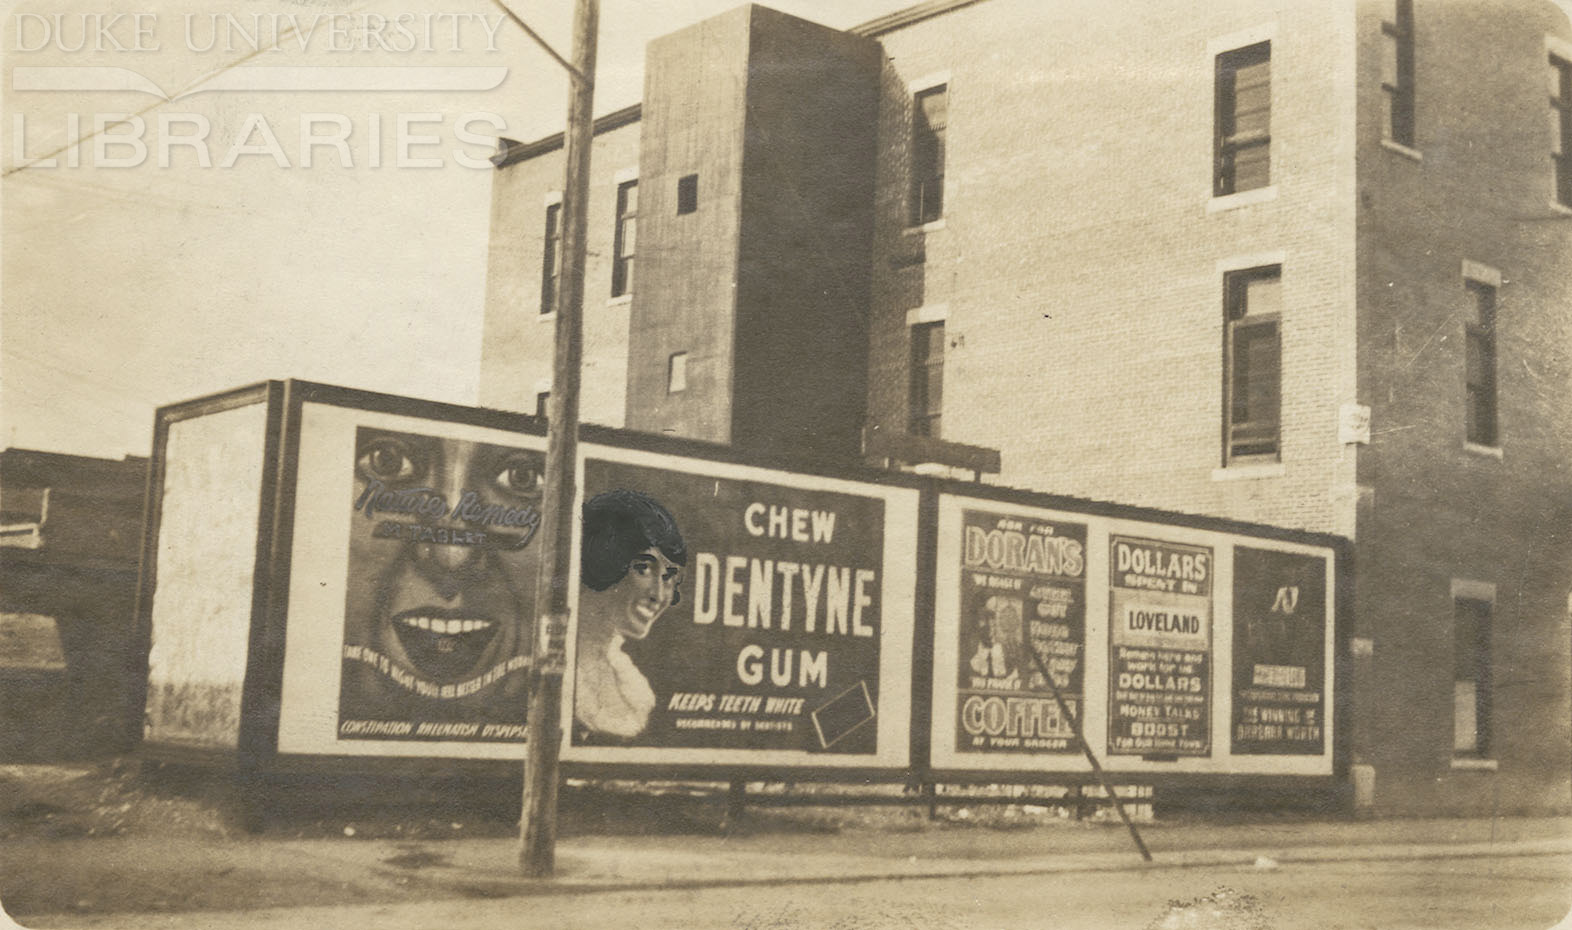 Black and white bilboard advertisements.